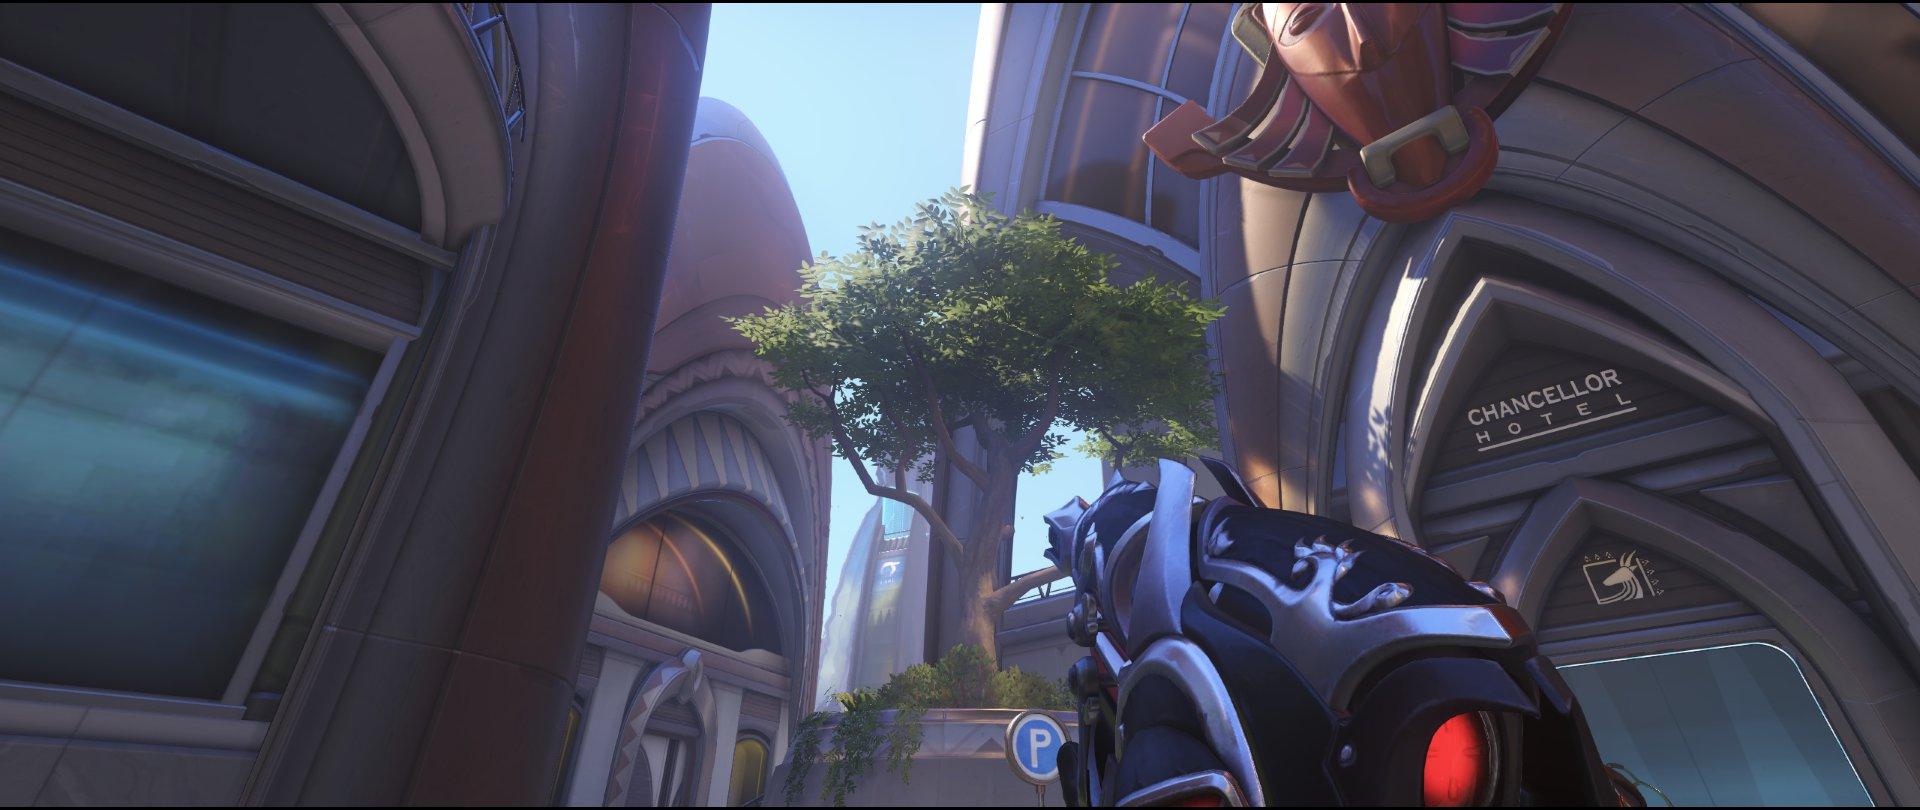 Tree spawn kill defense Widowmaker sniping spot Numbany Overwatch.jpg